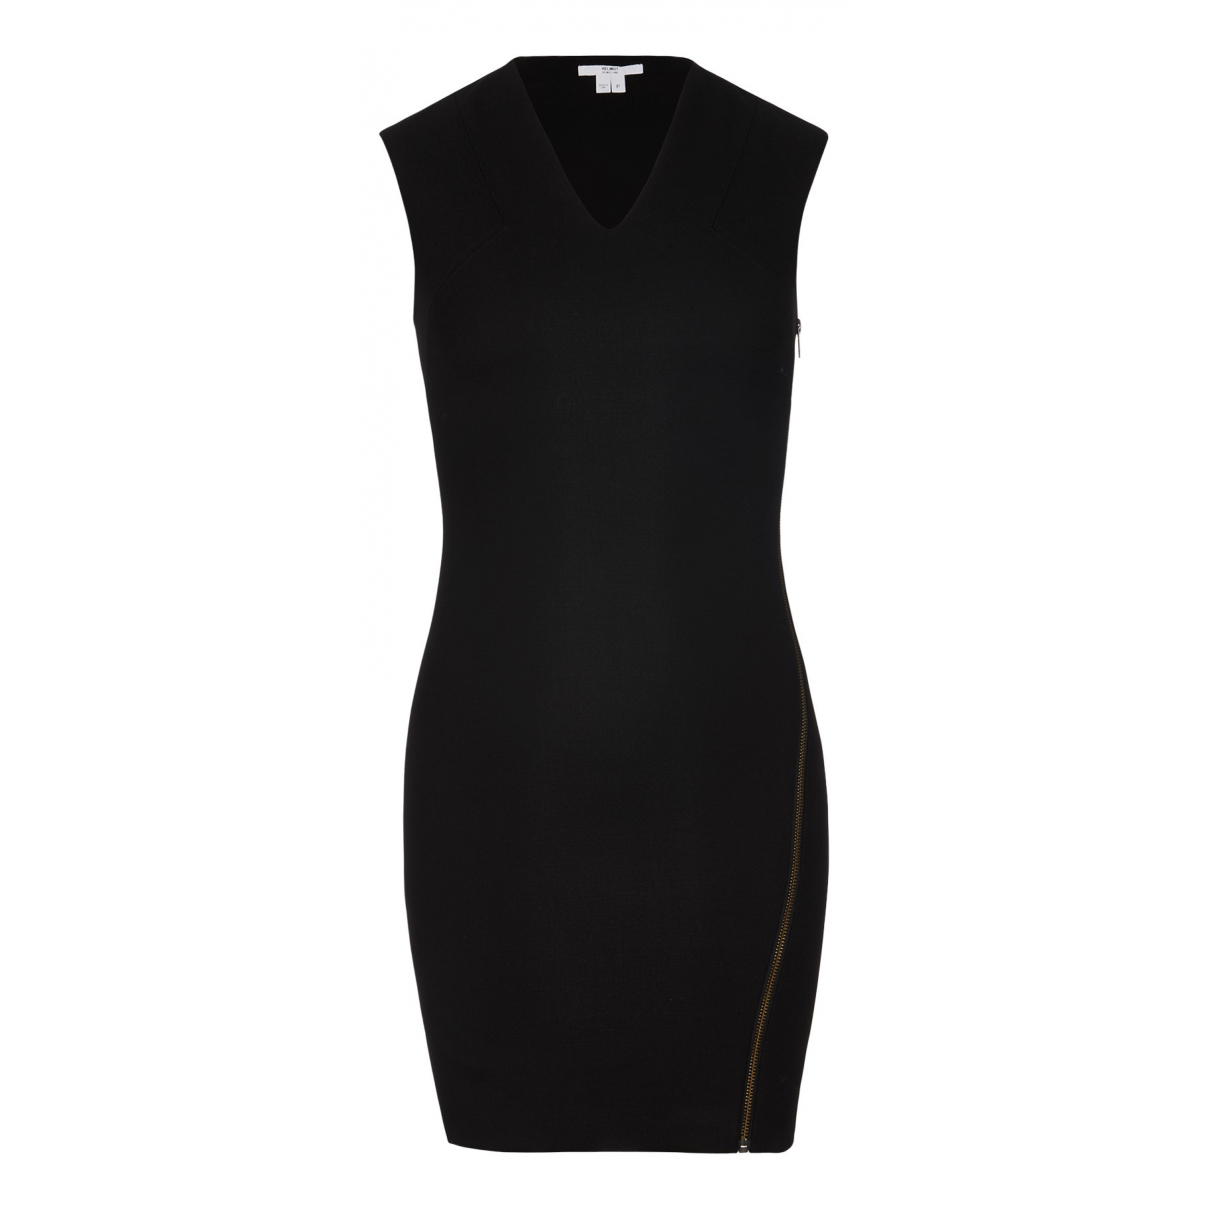 Helmut Lang N Black dress for Women 6 UK